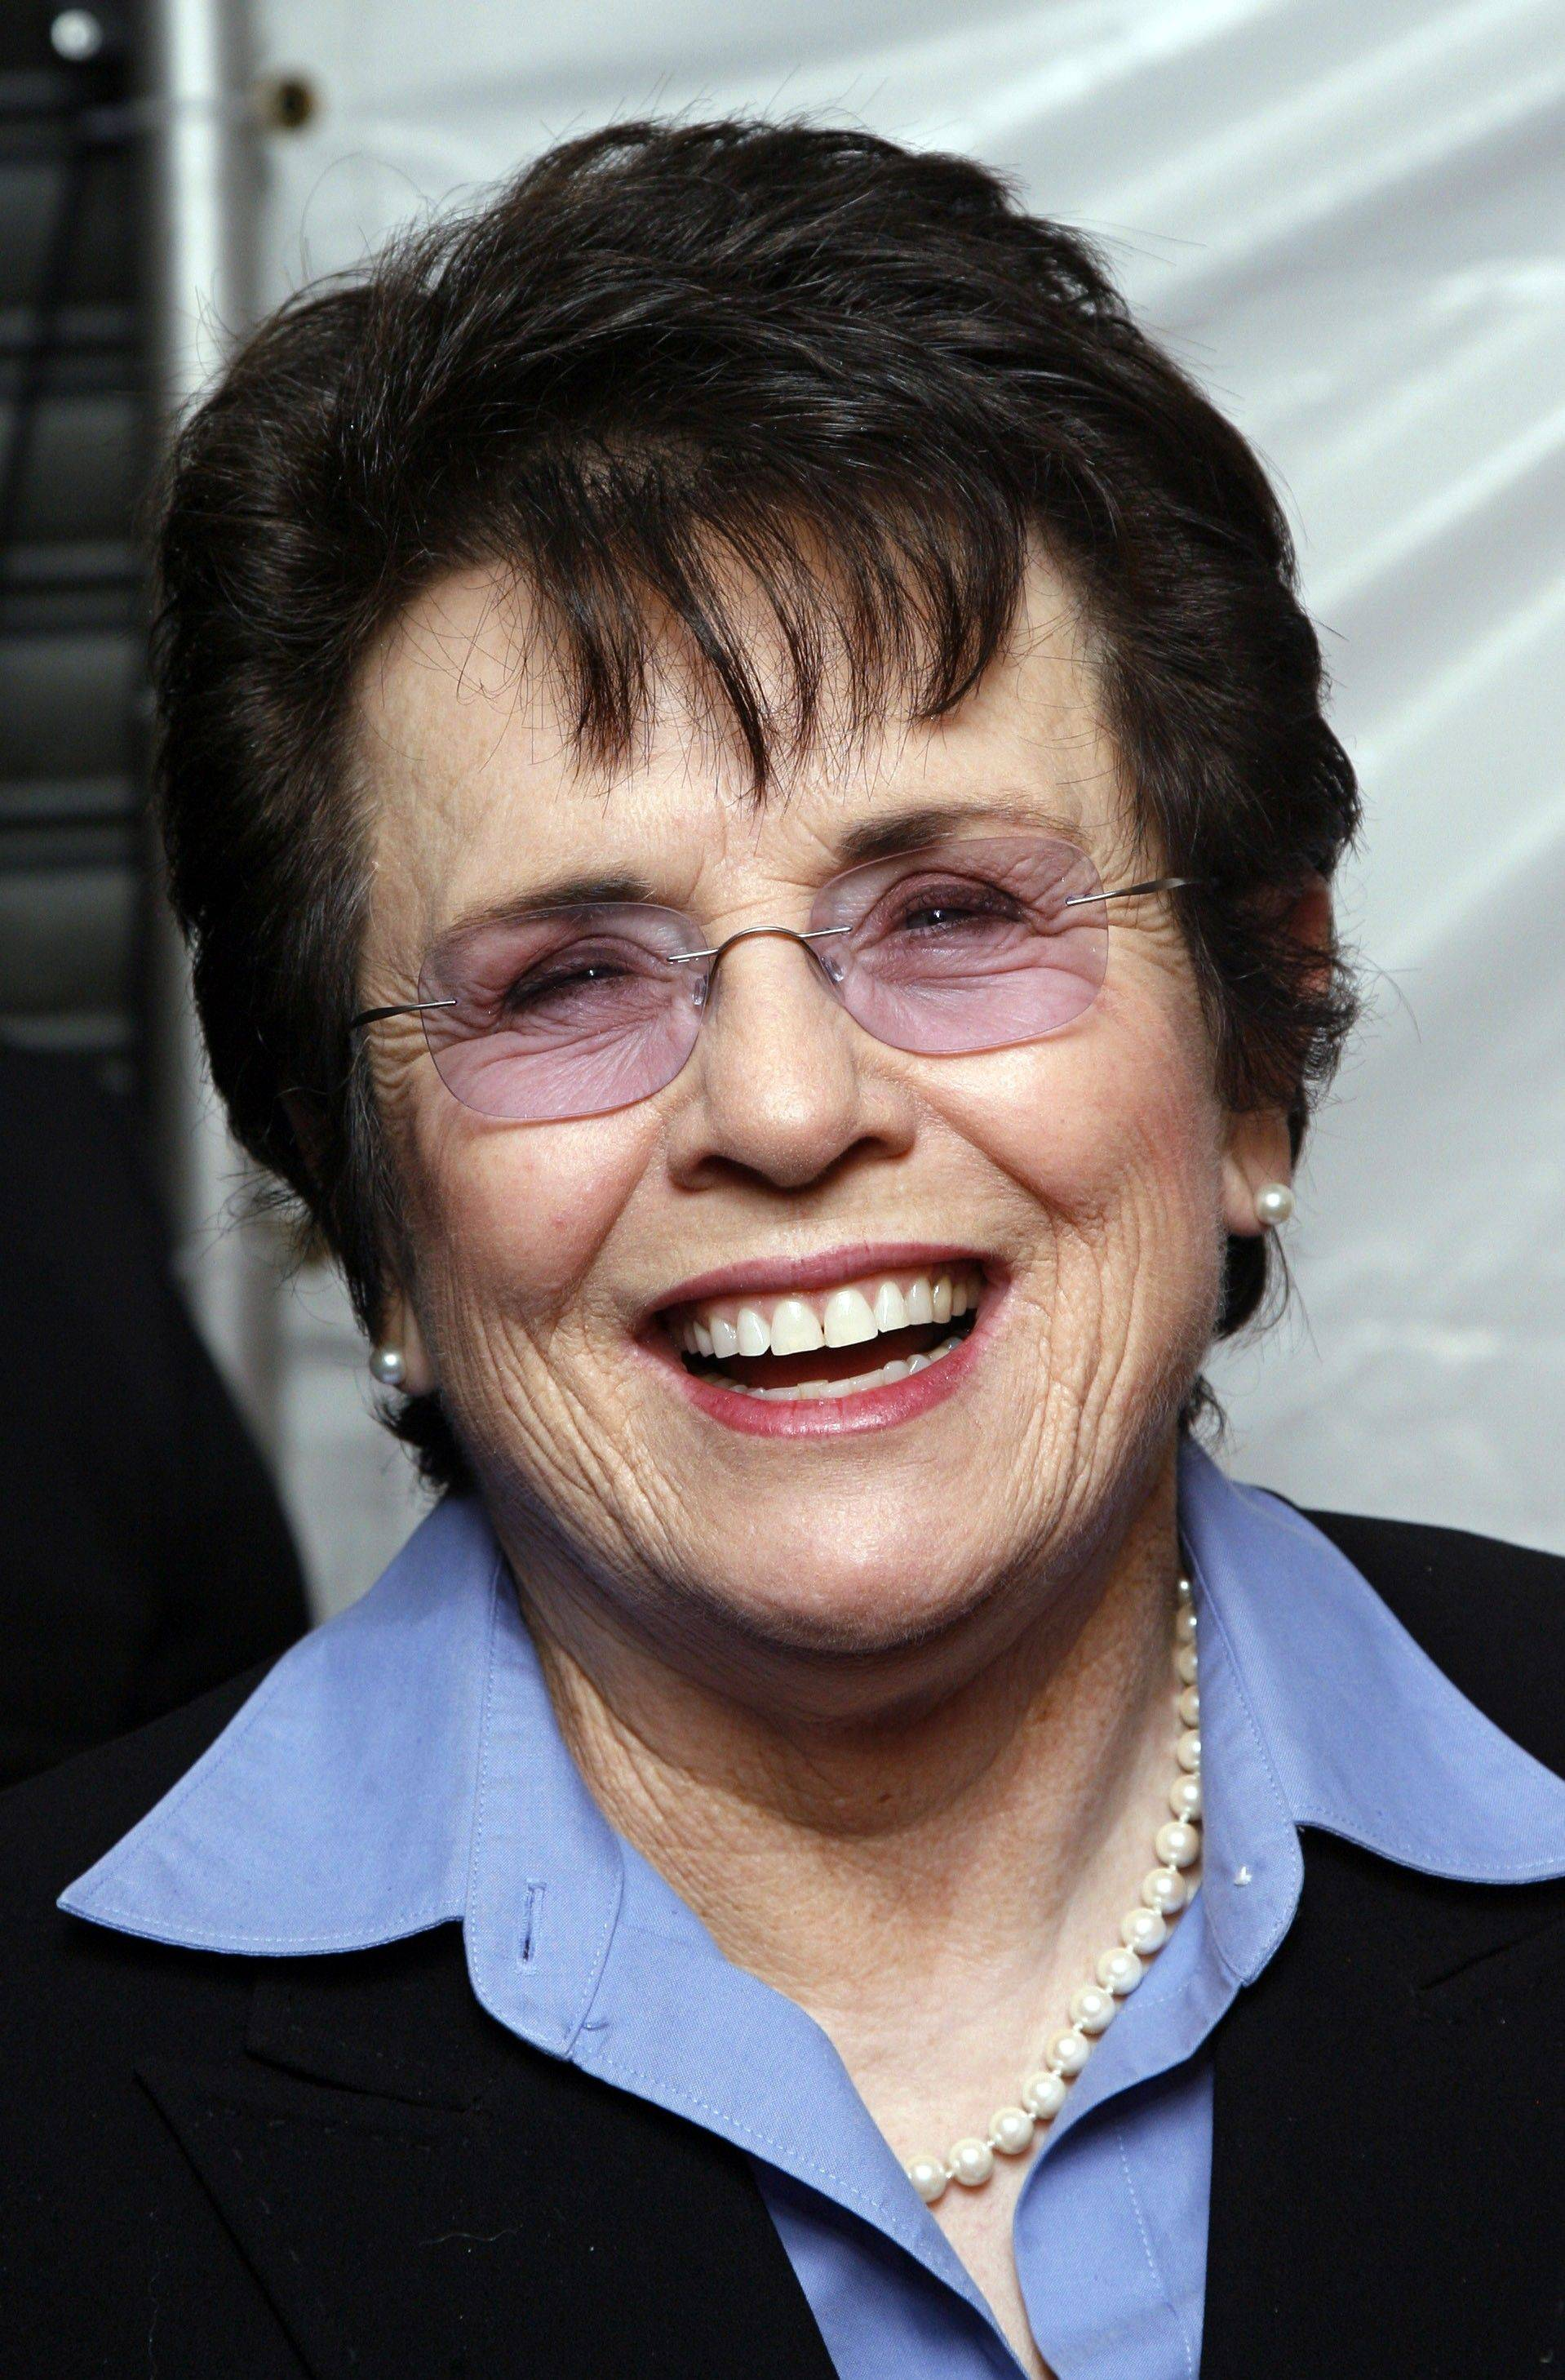 Tennis legend Billie Jean King will serve as the celebrity host of the Tennis Opportunity Program's annual fundraiser at the Midtown Tennis Club in Chicago on Saturday, Oct. 29.